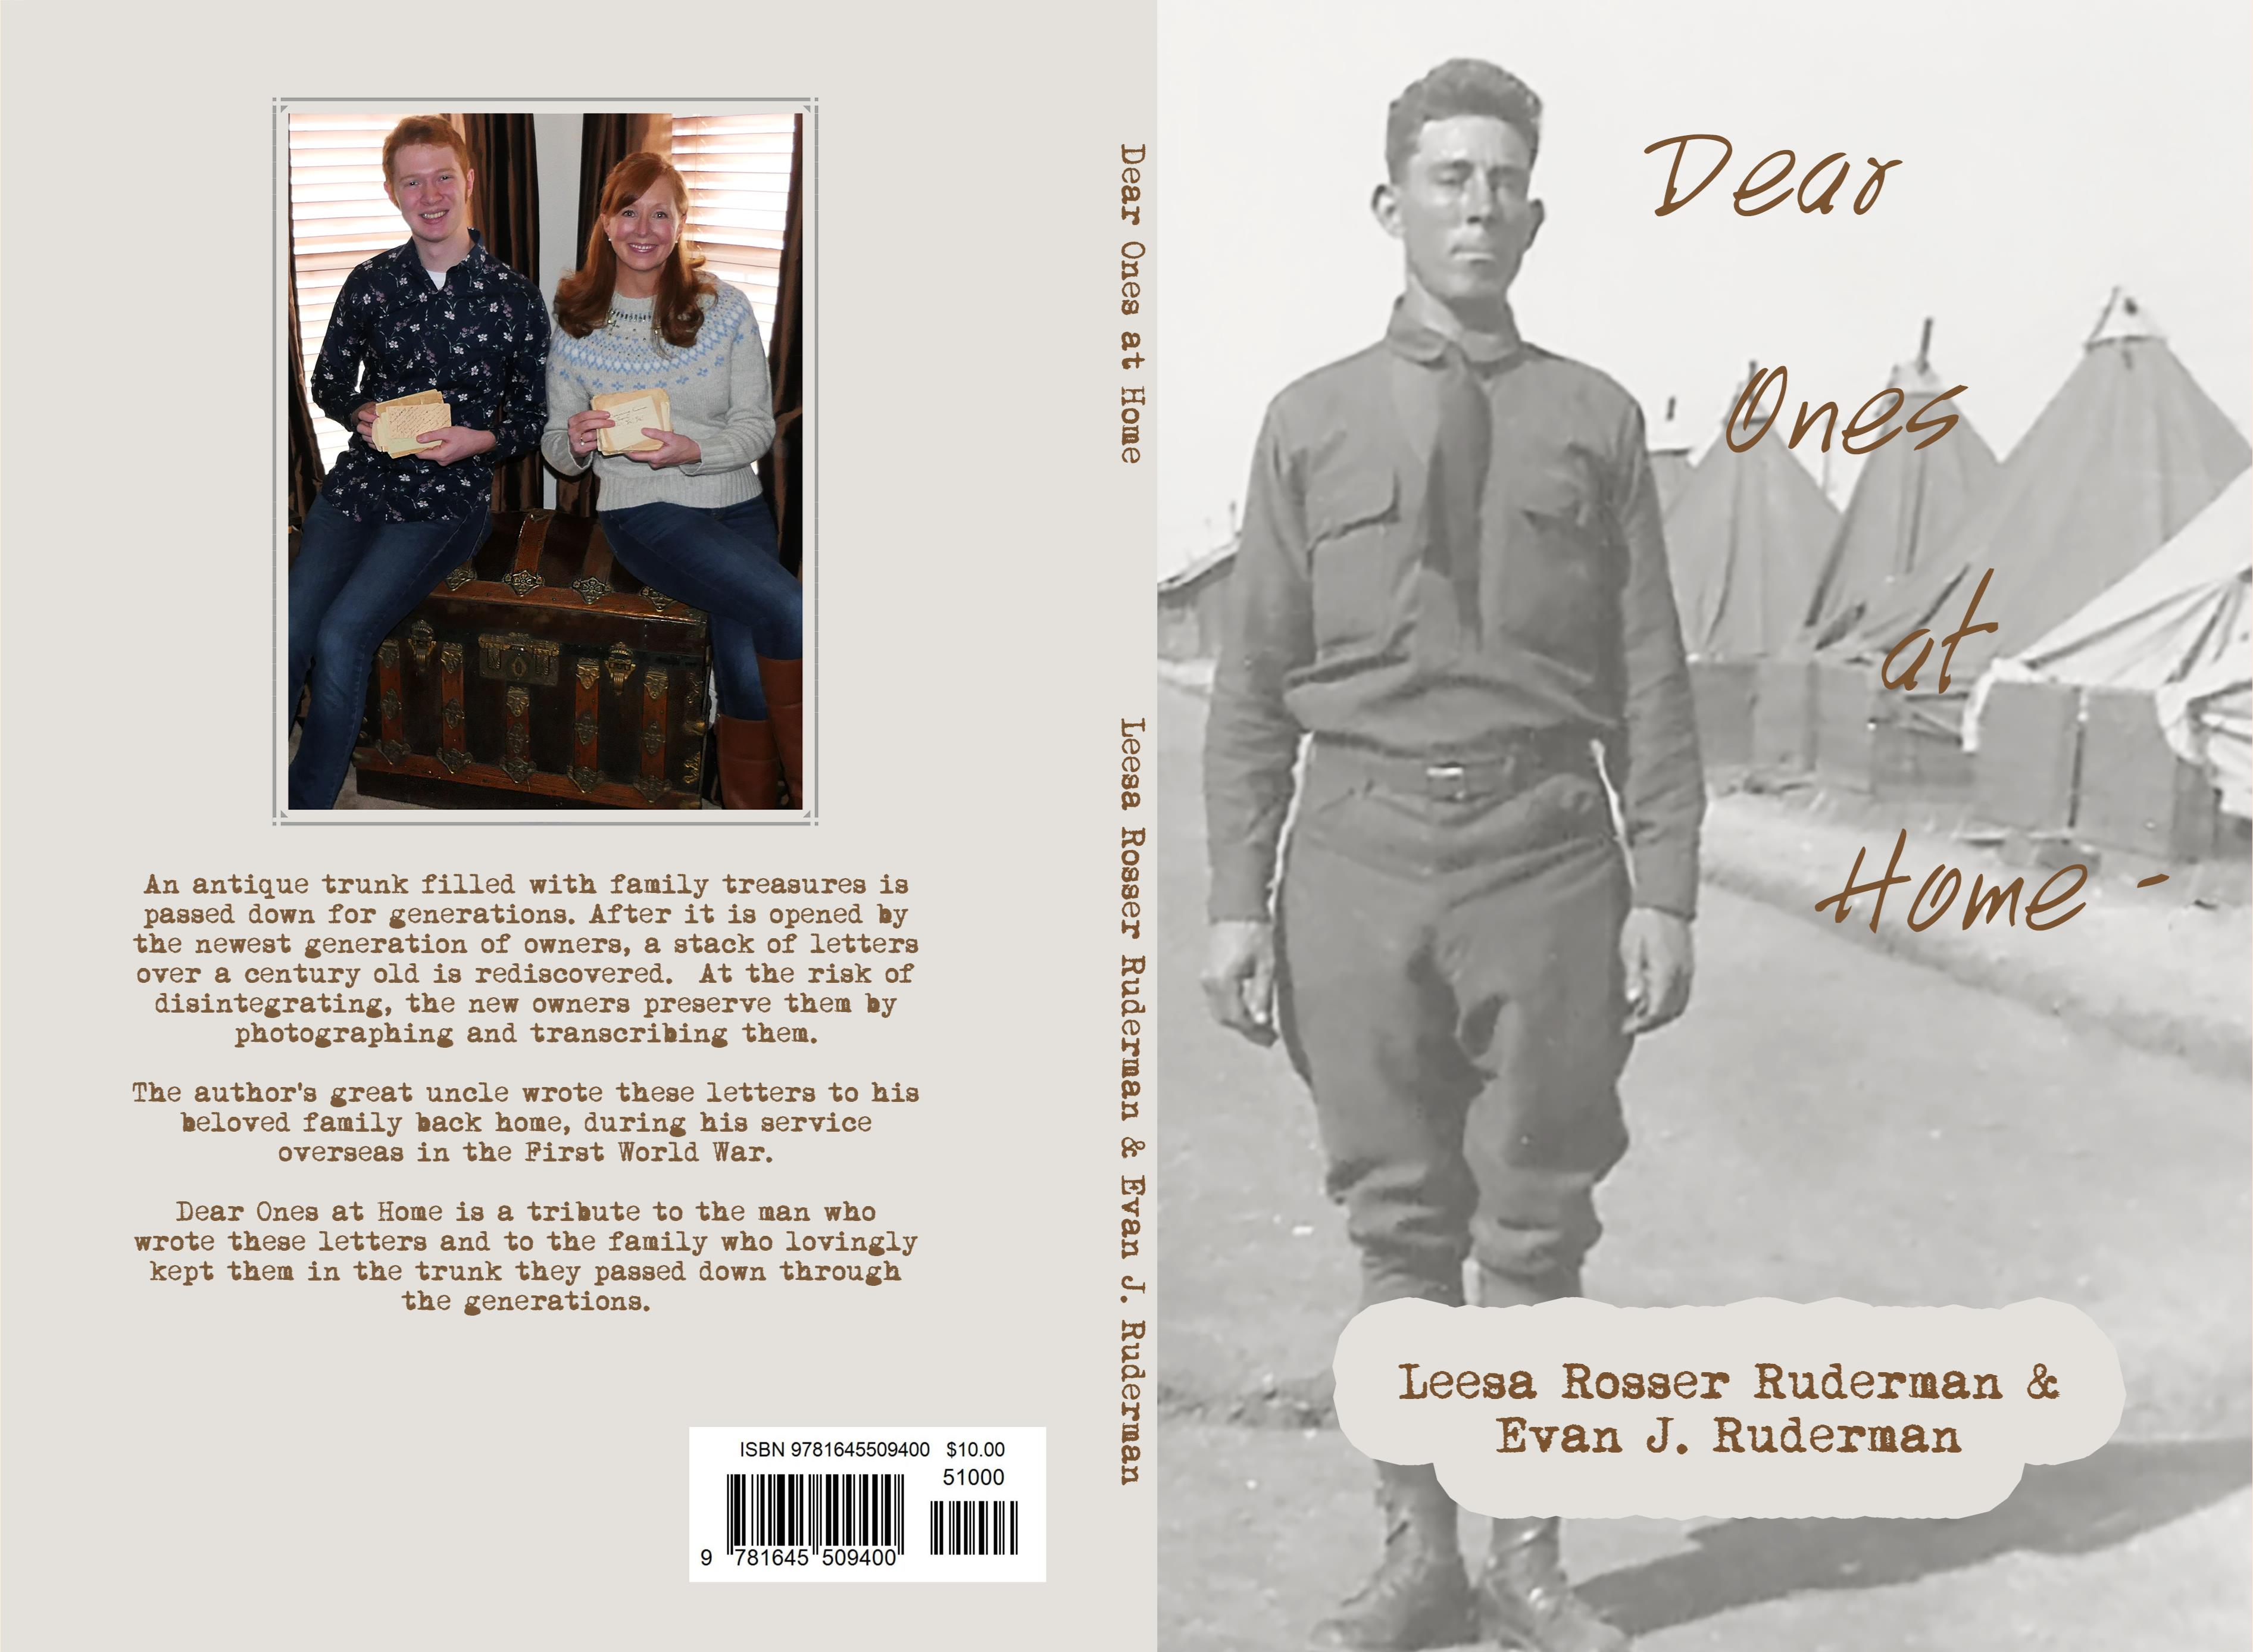 Dear Ones at Home cover image